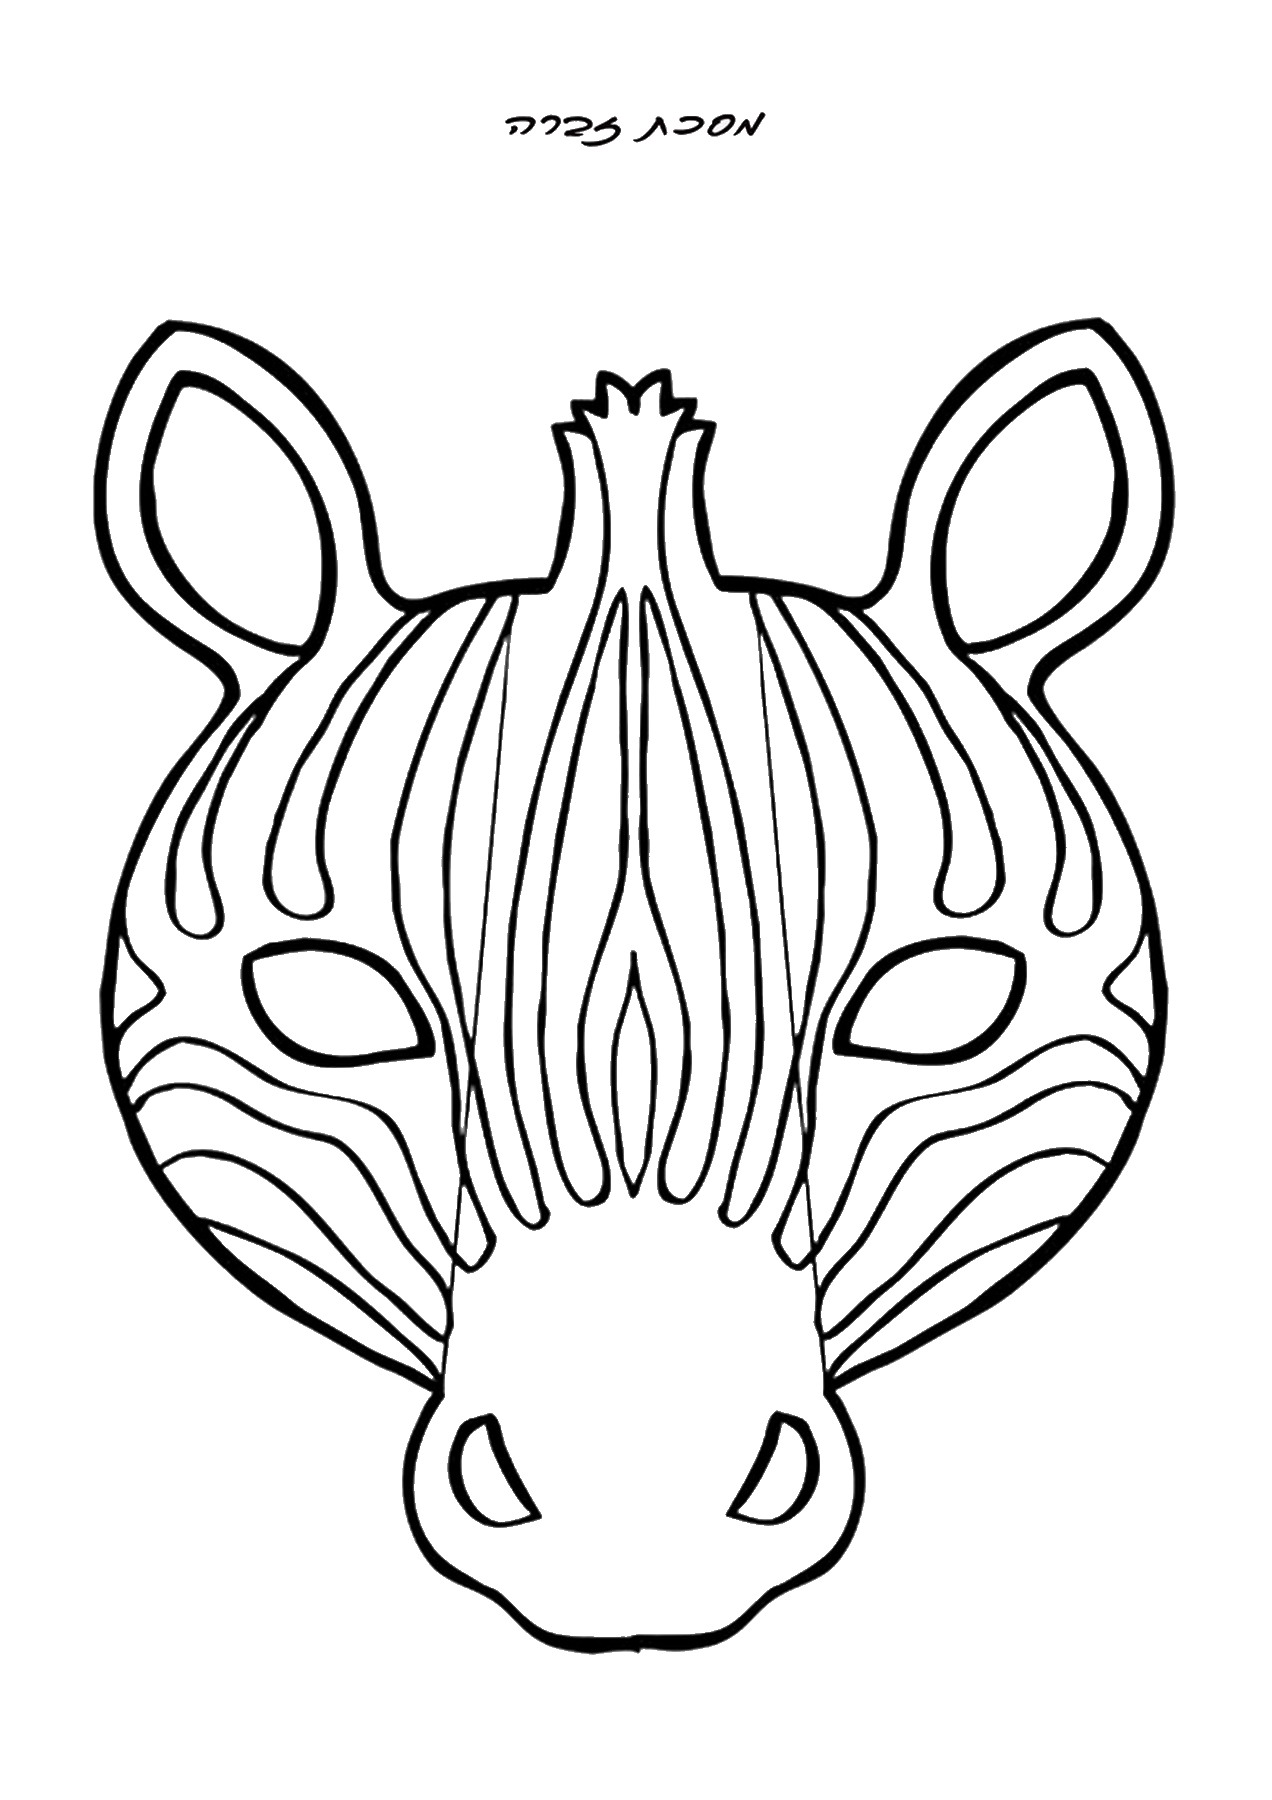 Starbucks coffee logo coloring pages coloring pages for Starbucks coloring page